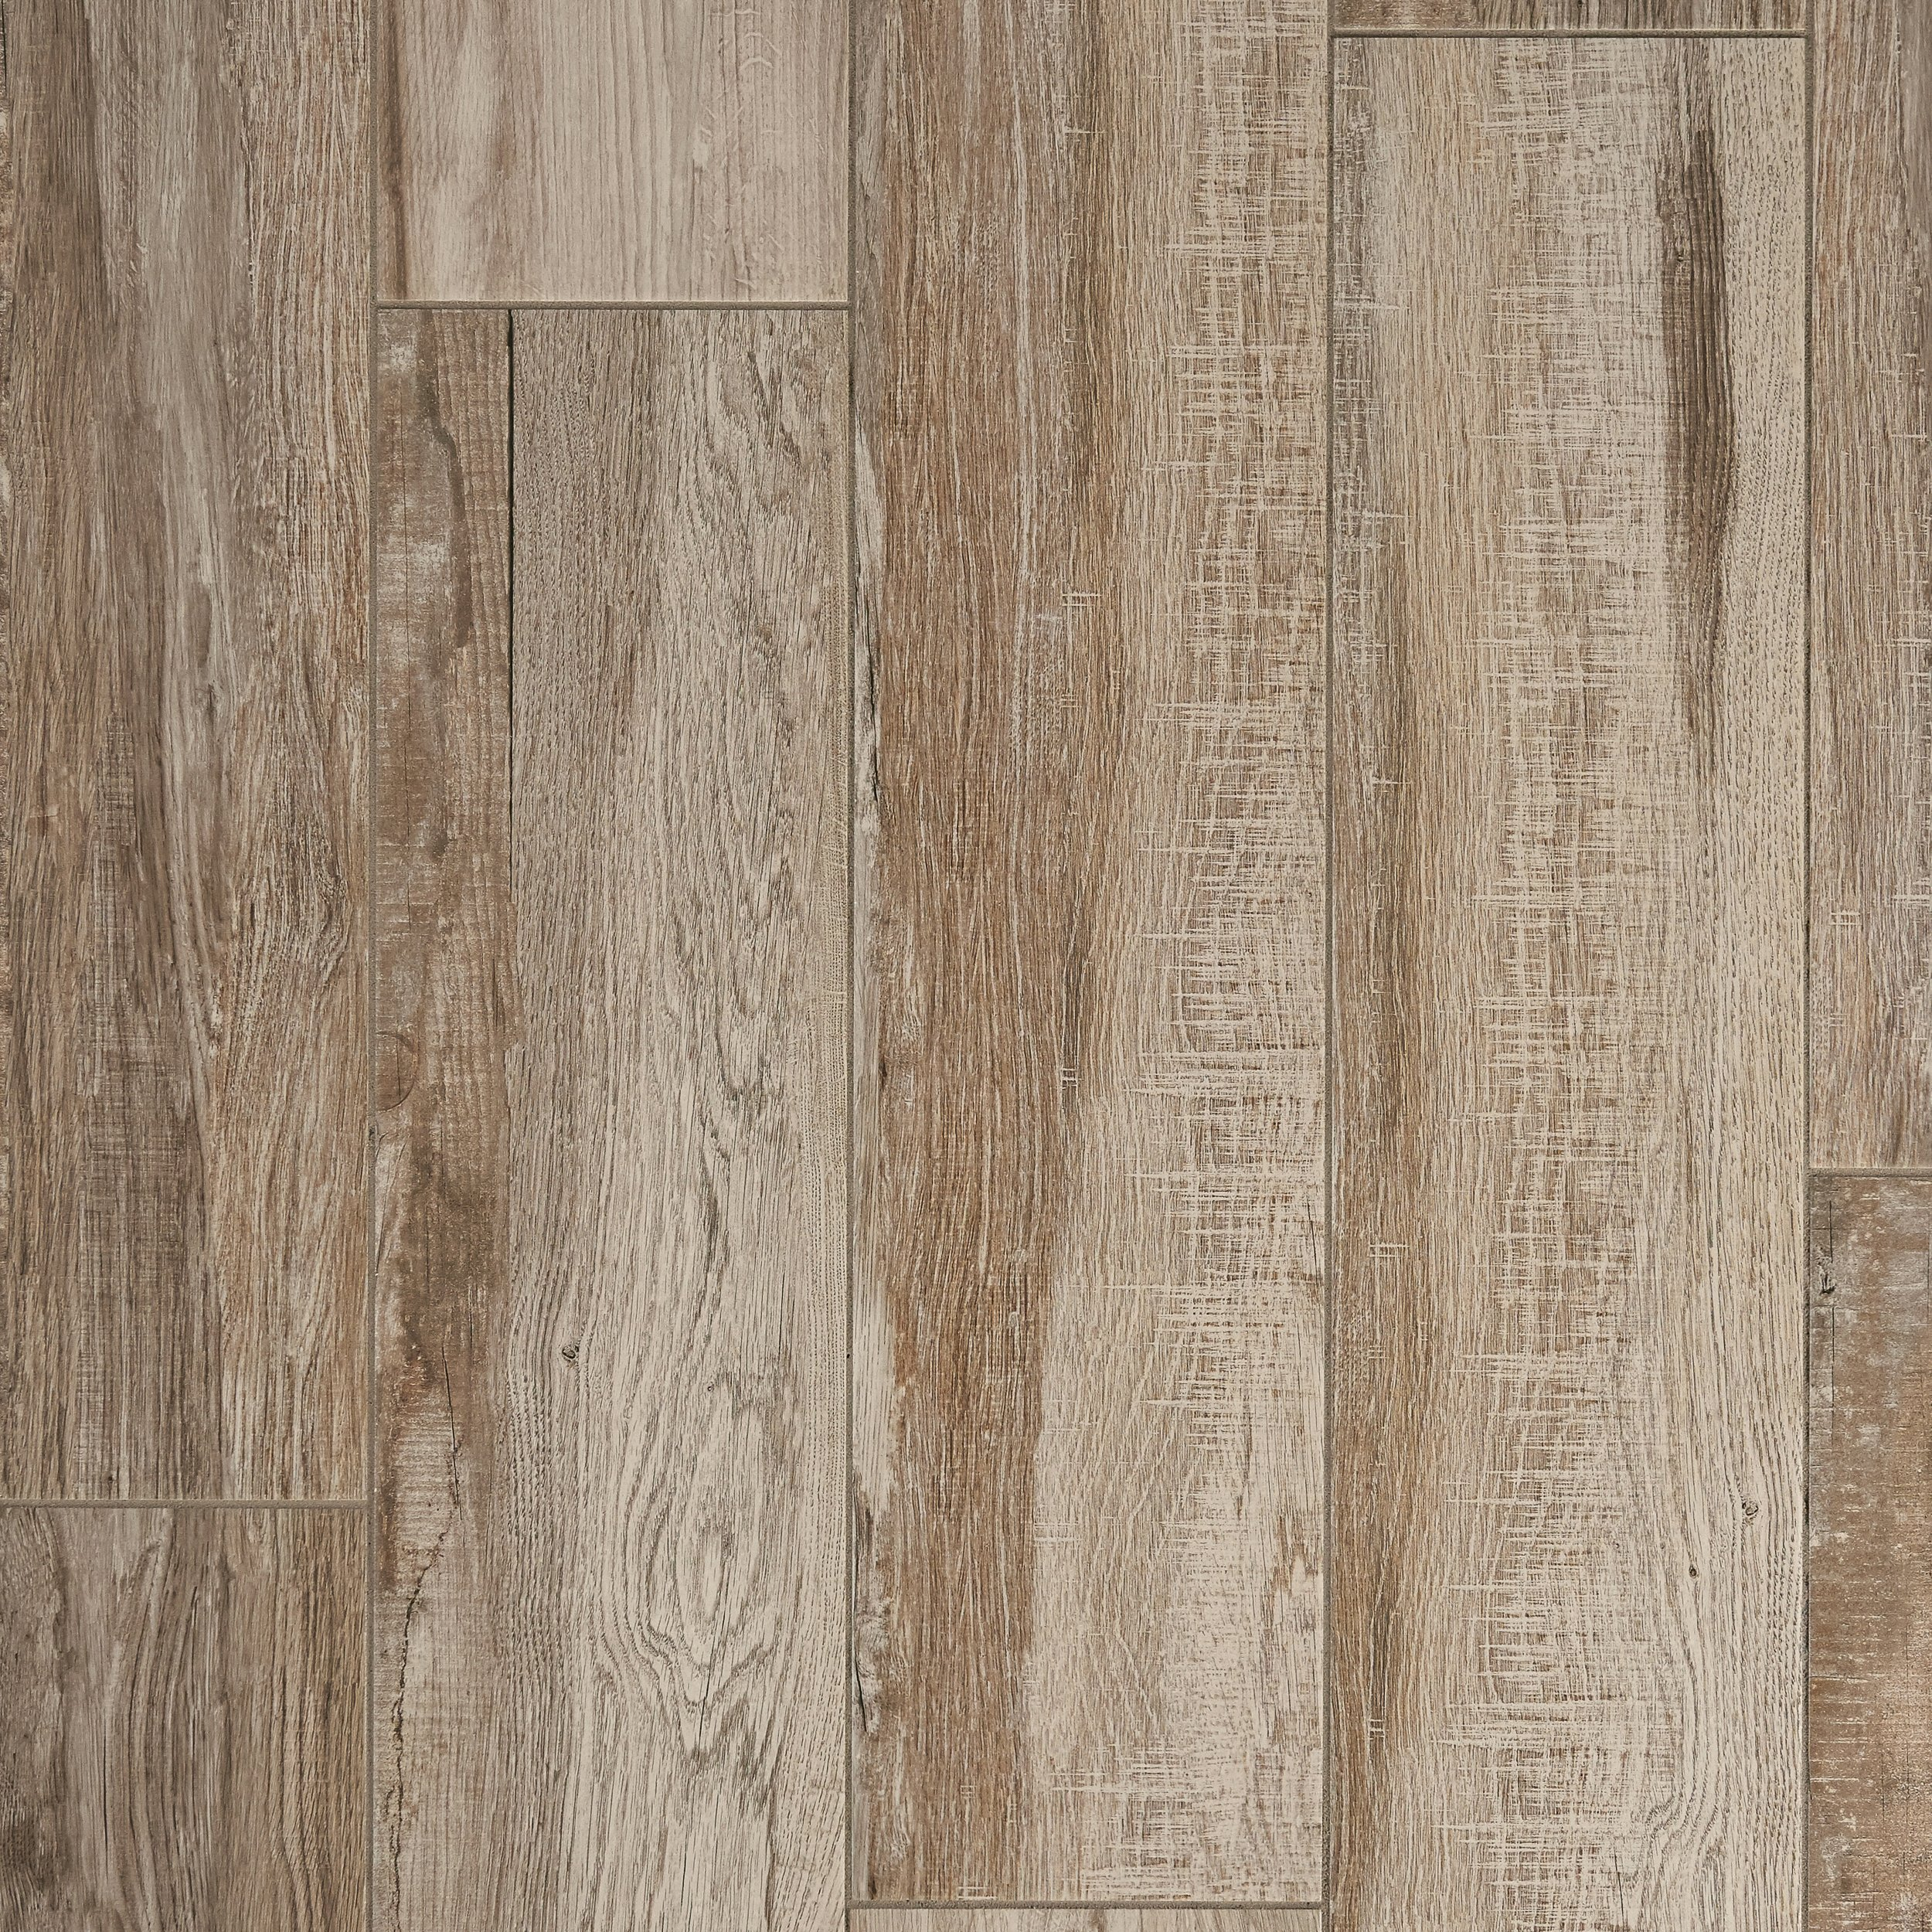 Chesterfield Gray Wood Plank Ceramic Tile 6 X 36 100213123